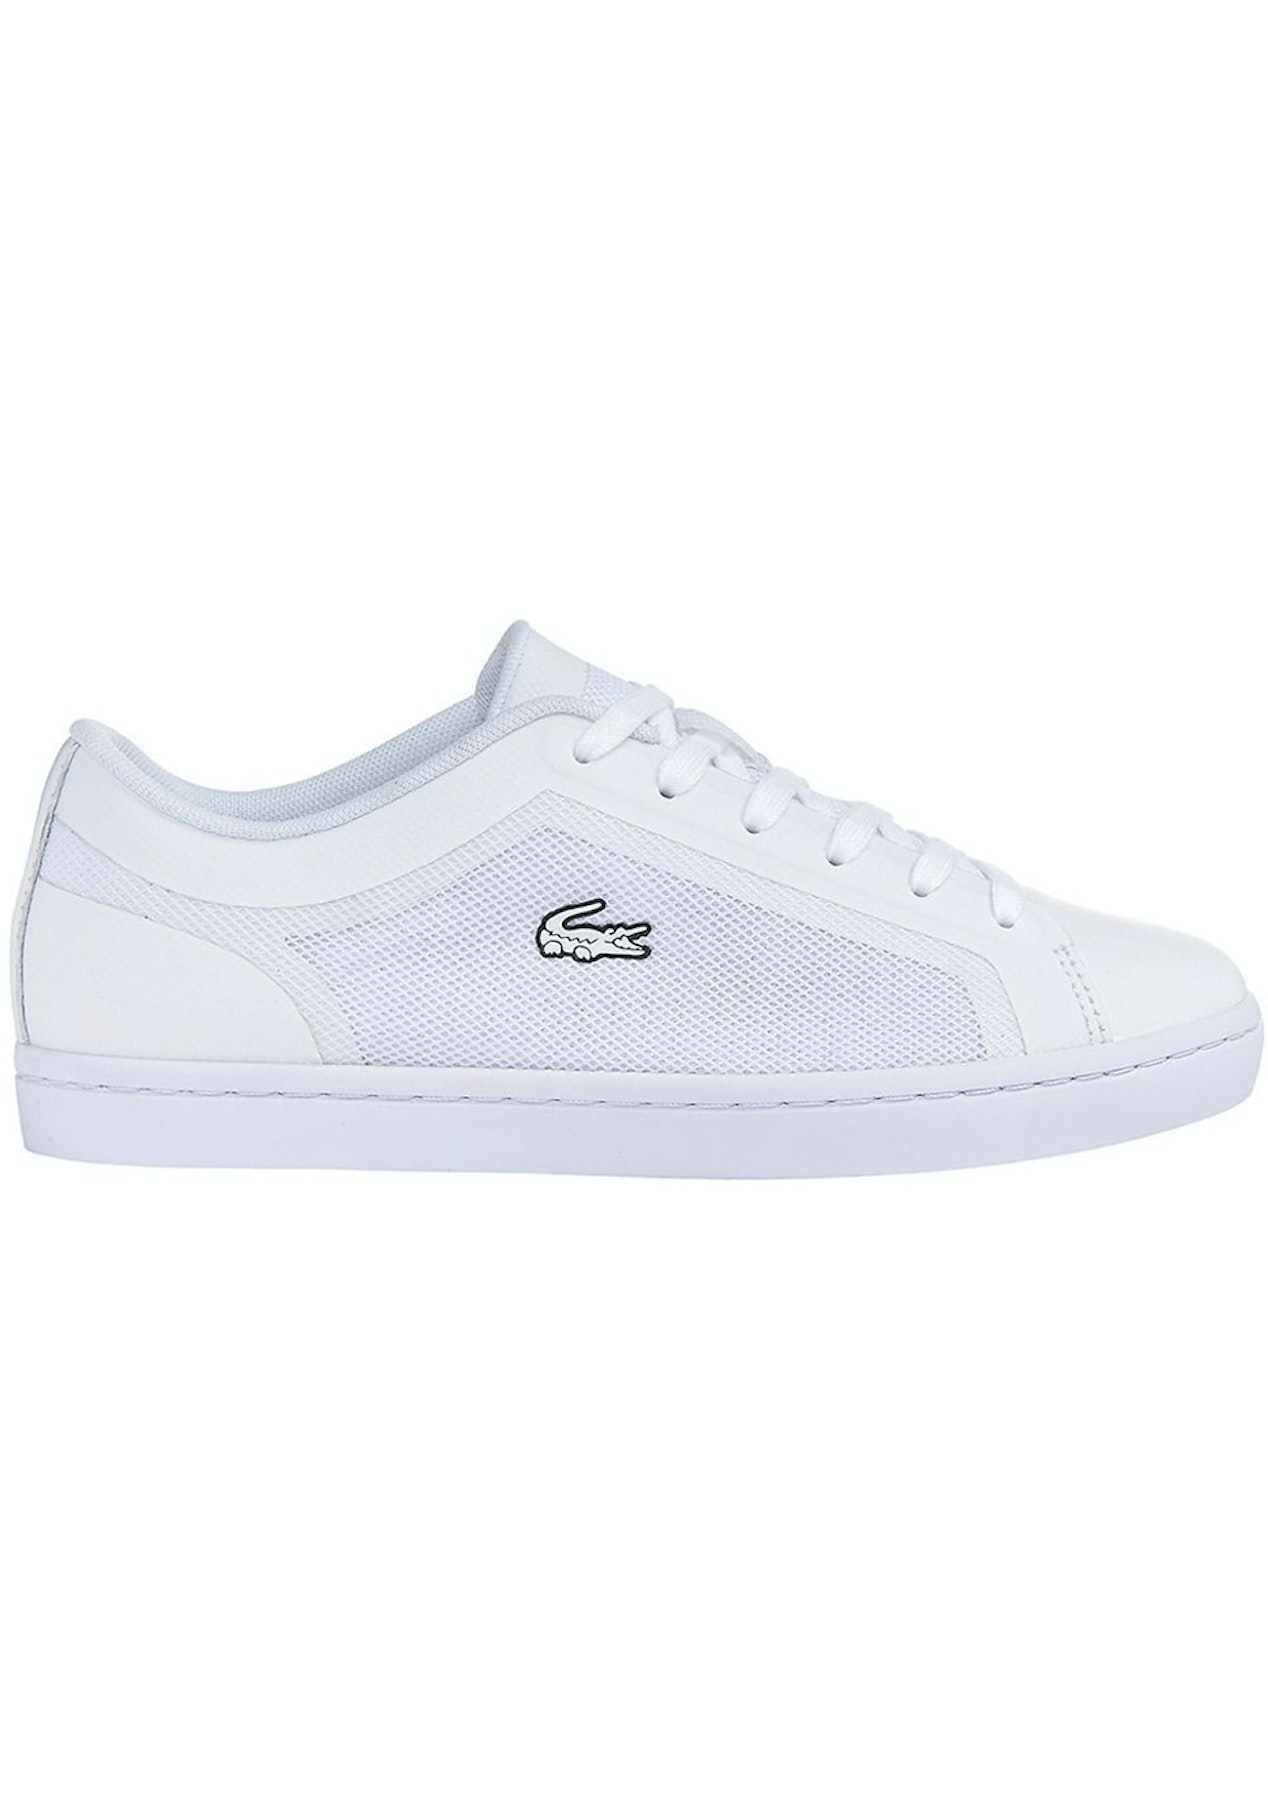 881b2a2e9d5ef8 Womens Lacoste - Straightset 116 4 - White - Under  150 Women s Shoes Sale  - Onceit